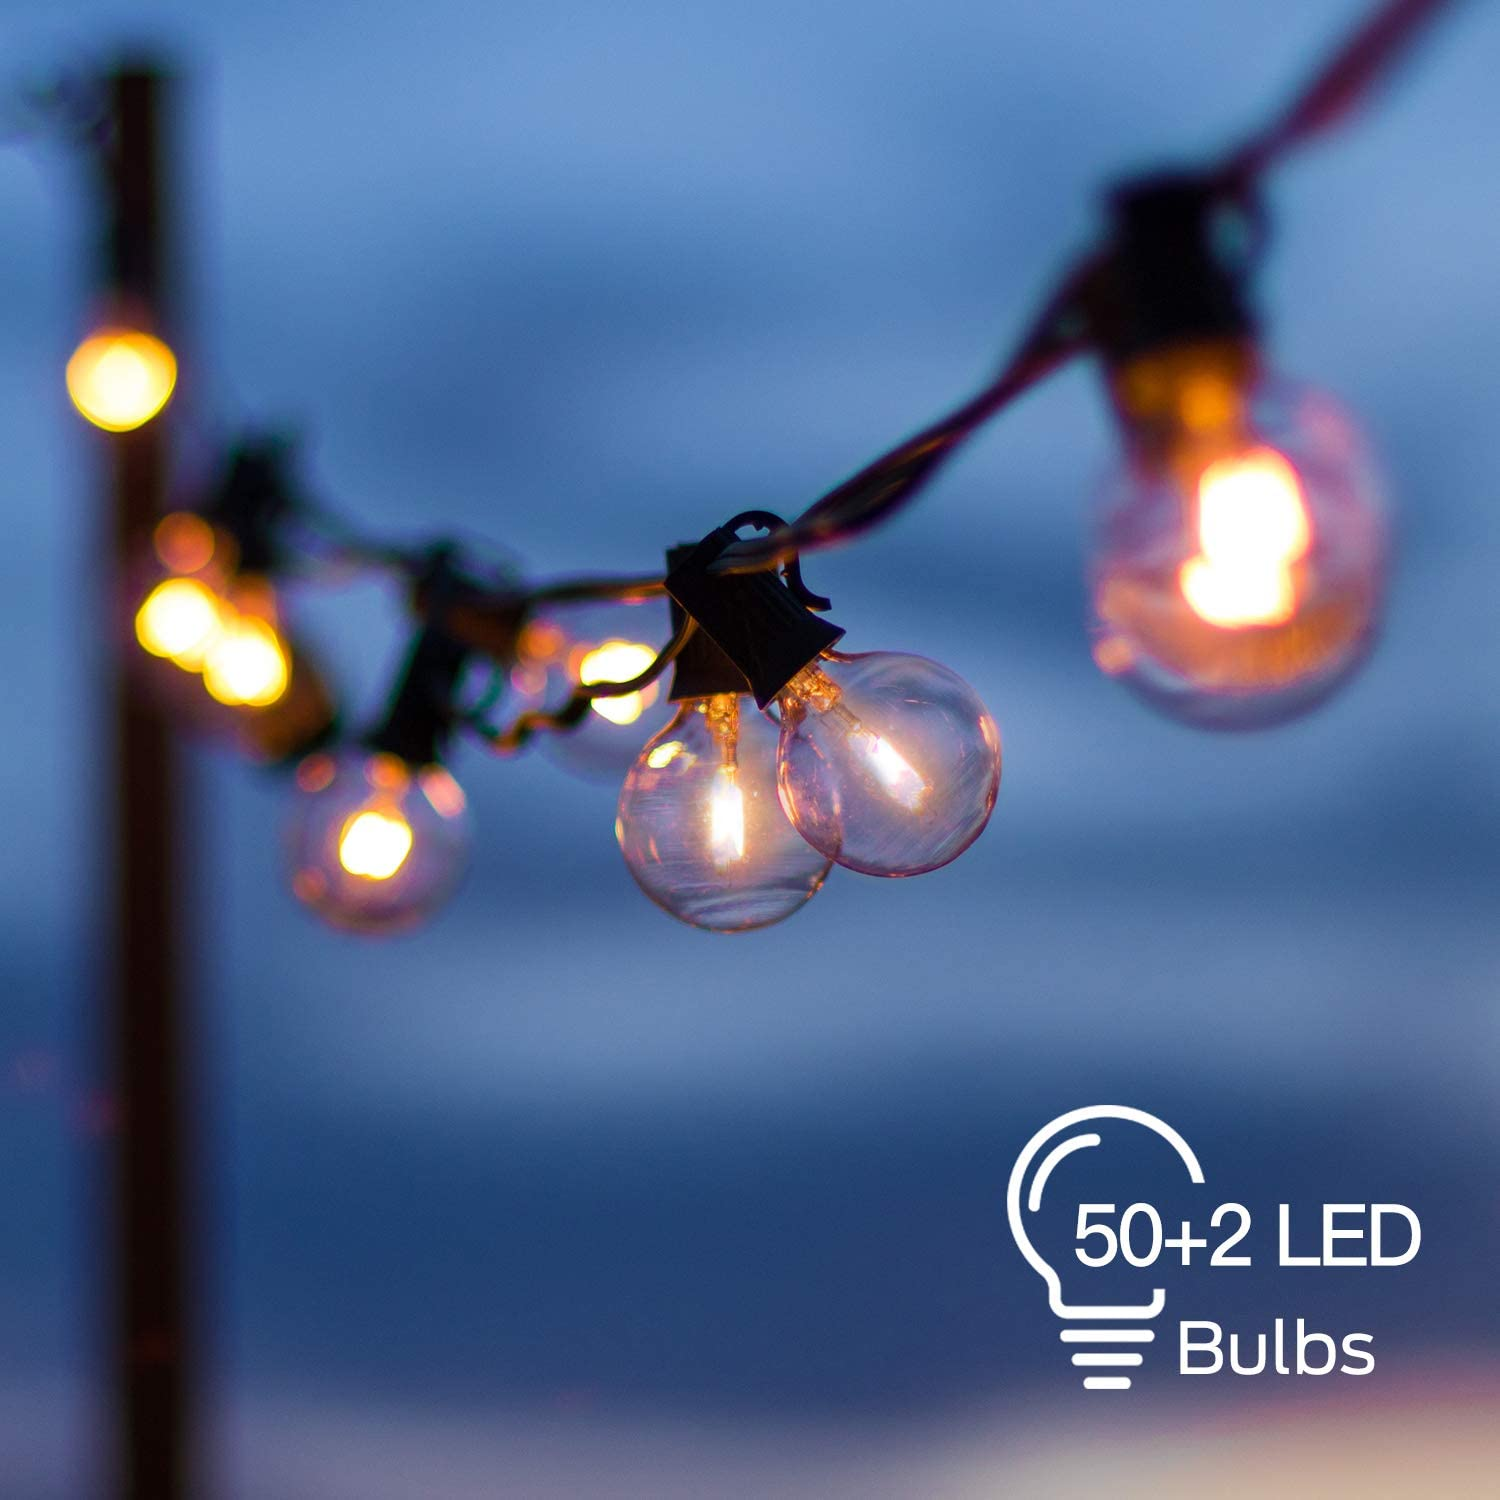 LED Globe String Lights Outdoor with 52 Clear G40 Bulbs (2 Spare), 54 Ft Hanging String Lights Connectable Waterproof for Indoor Bedroom Patio Garden Porch Wedding Party Christmas, 1W Bulb, Black Wire